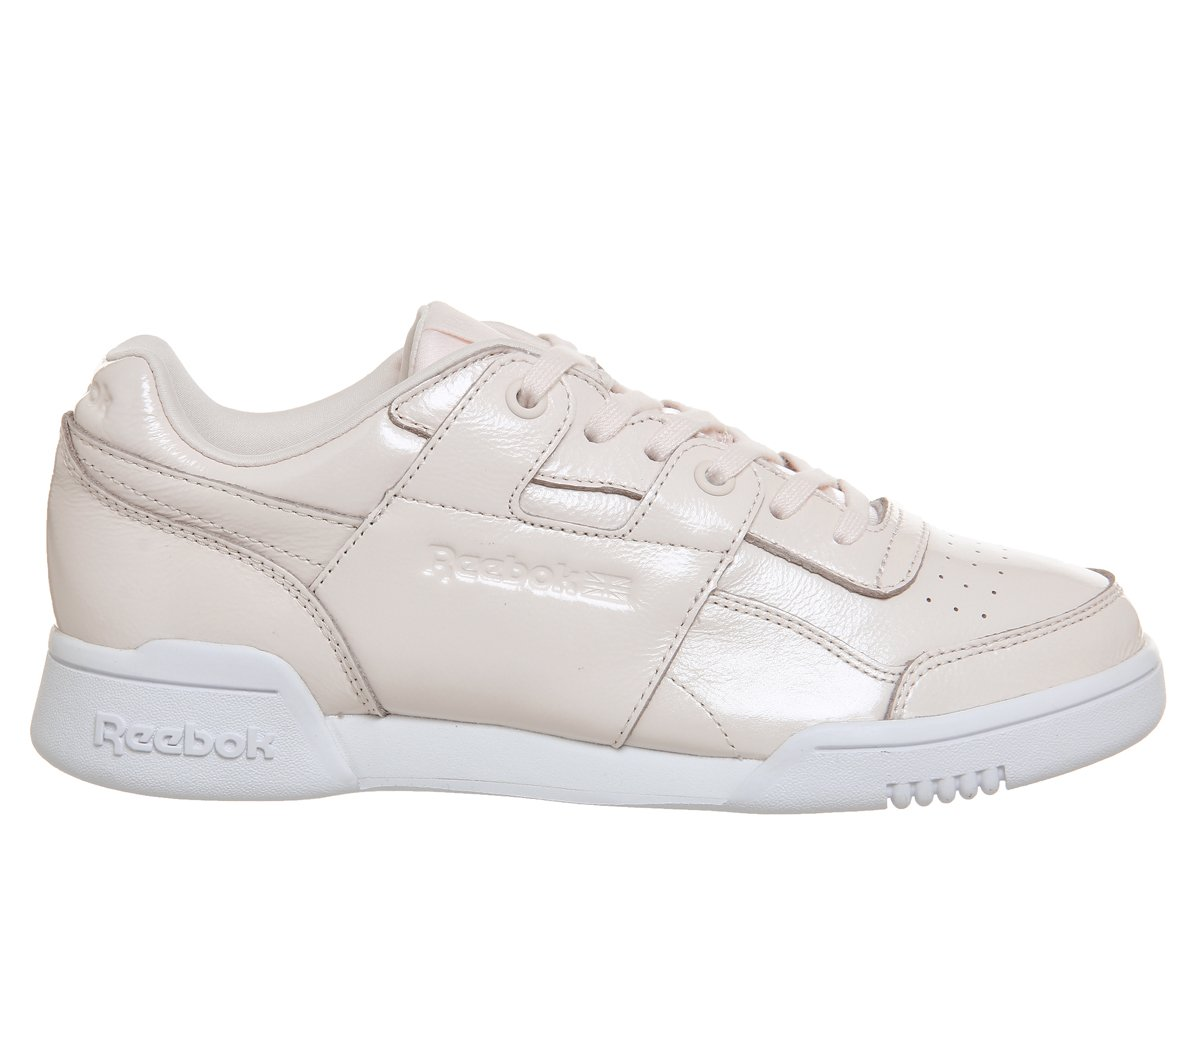 Reebok W/oder was Plus Iridescent – Sneaker